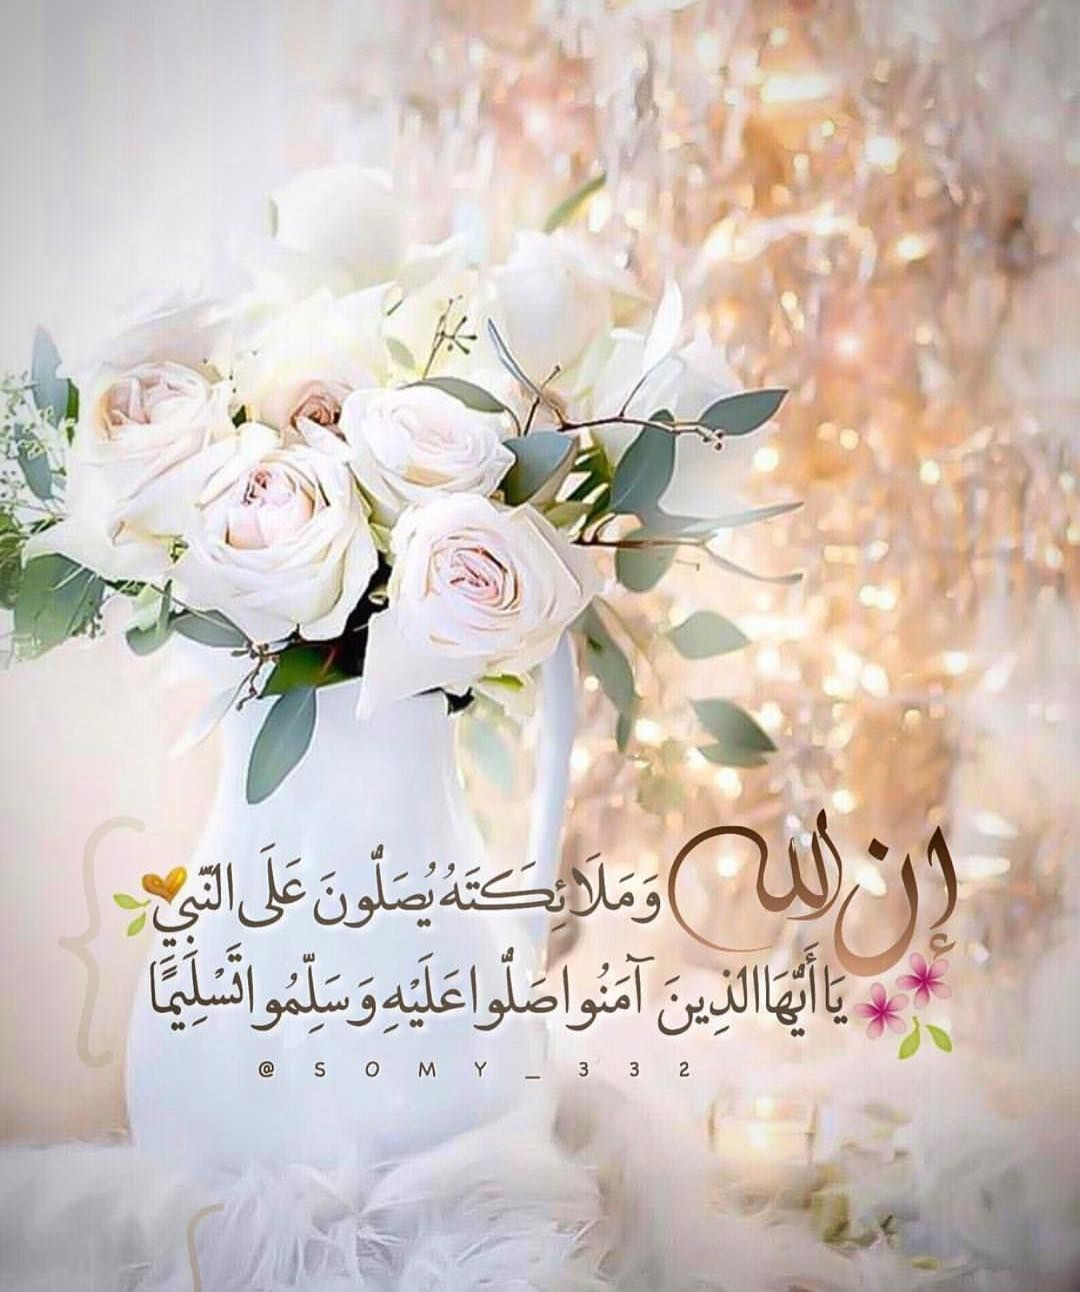 صور دعاء يوم الجمعة 2020 Islamic Images Ramadan Wishes Prayer For The Day